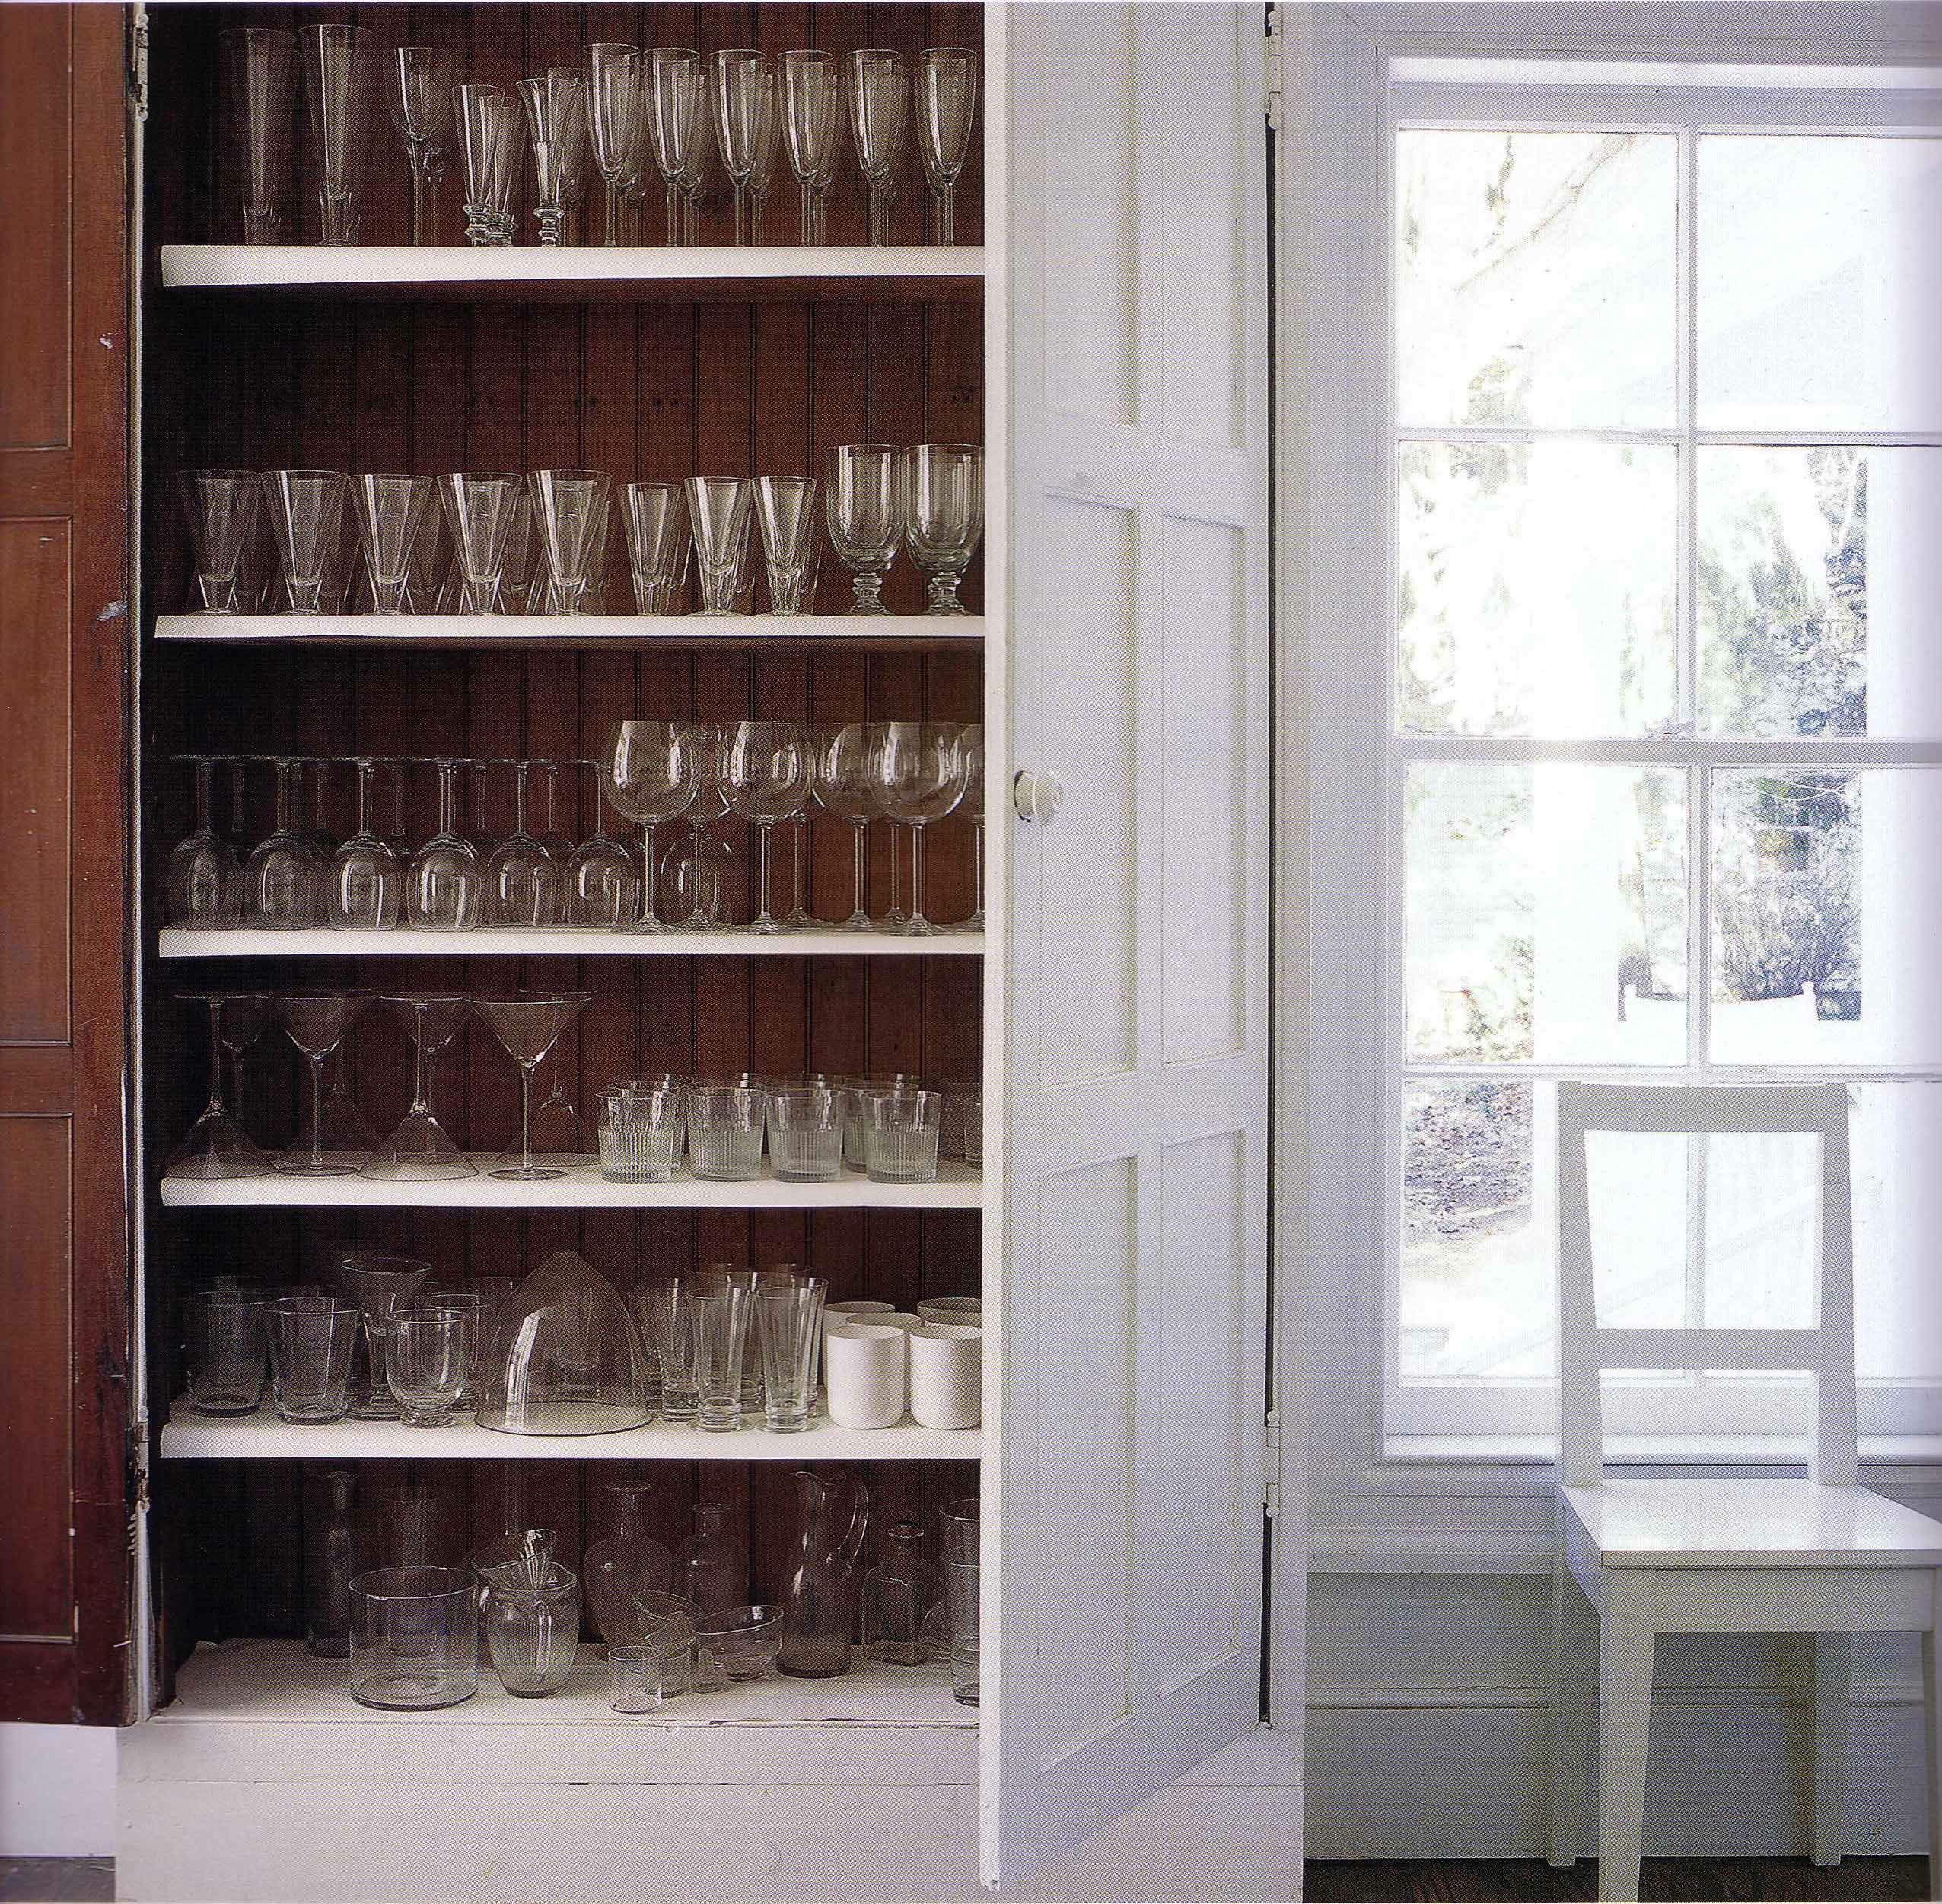 Messy Kitchen Pantry: Glasses For Every Occasion